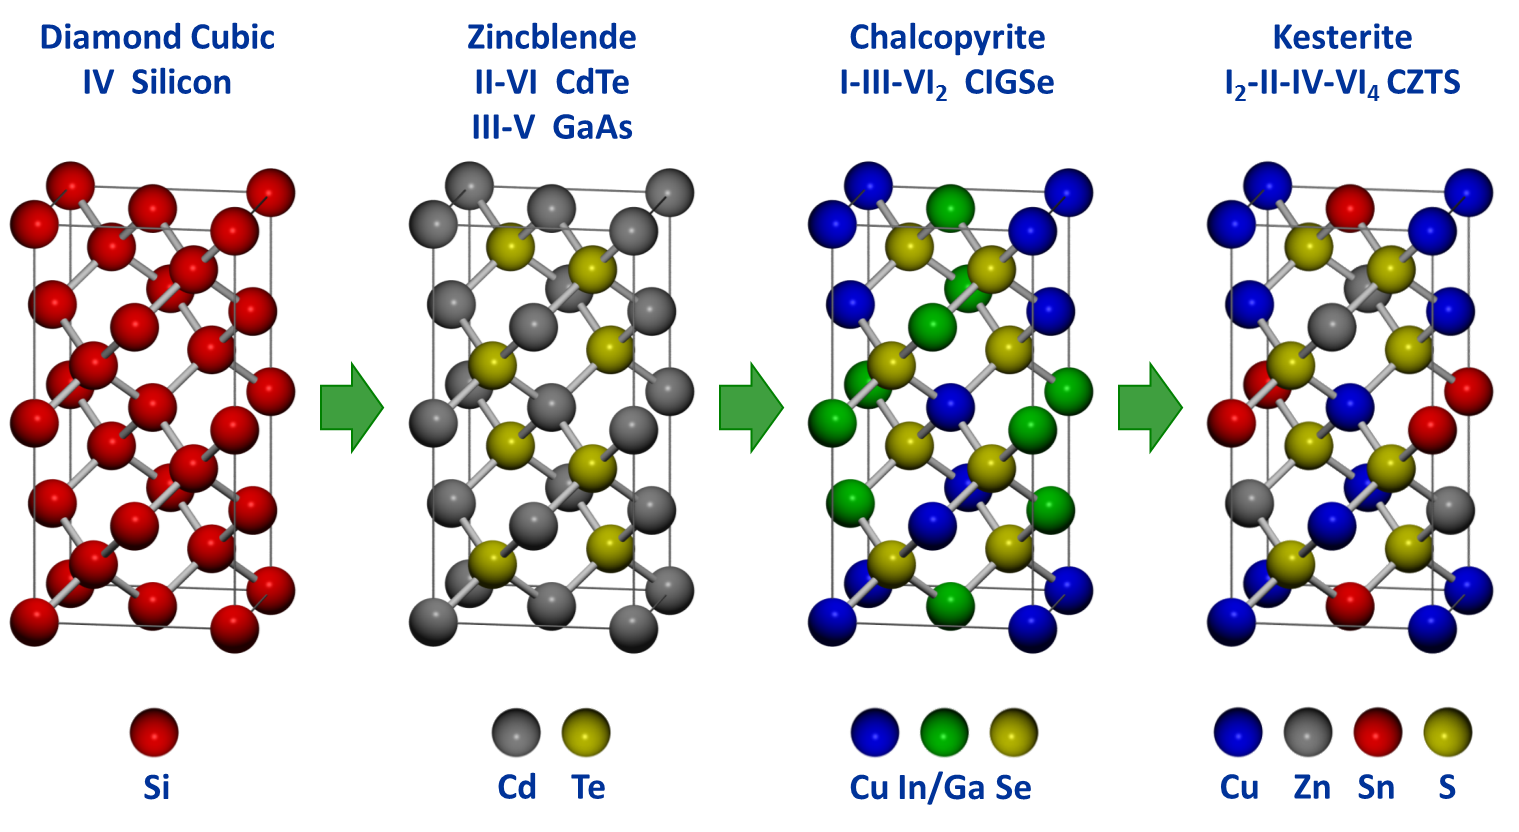 Crystal structures of semiconductor materials.